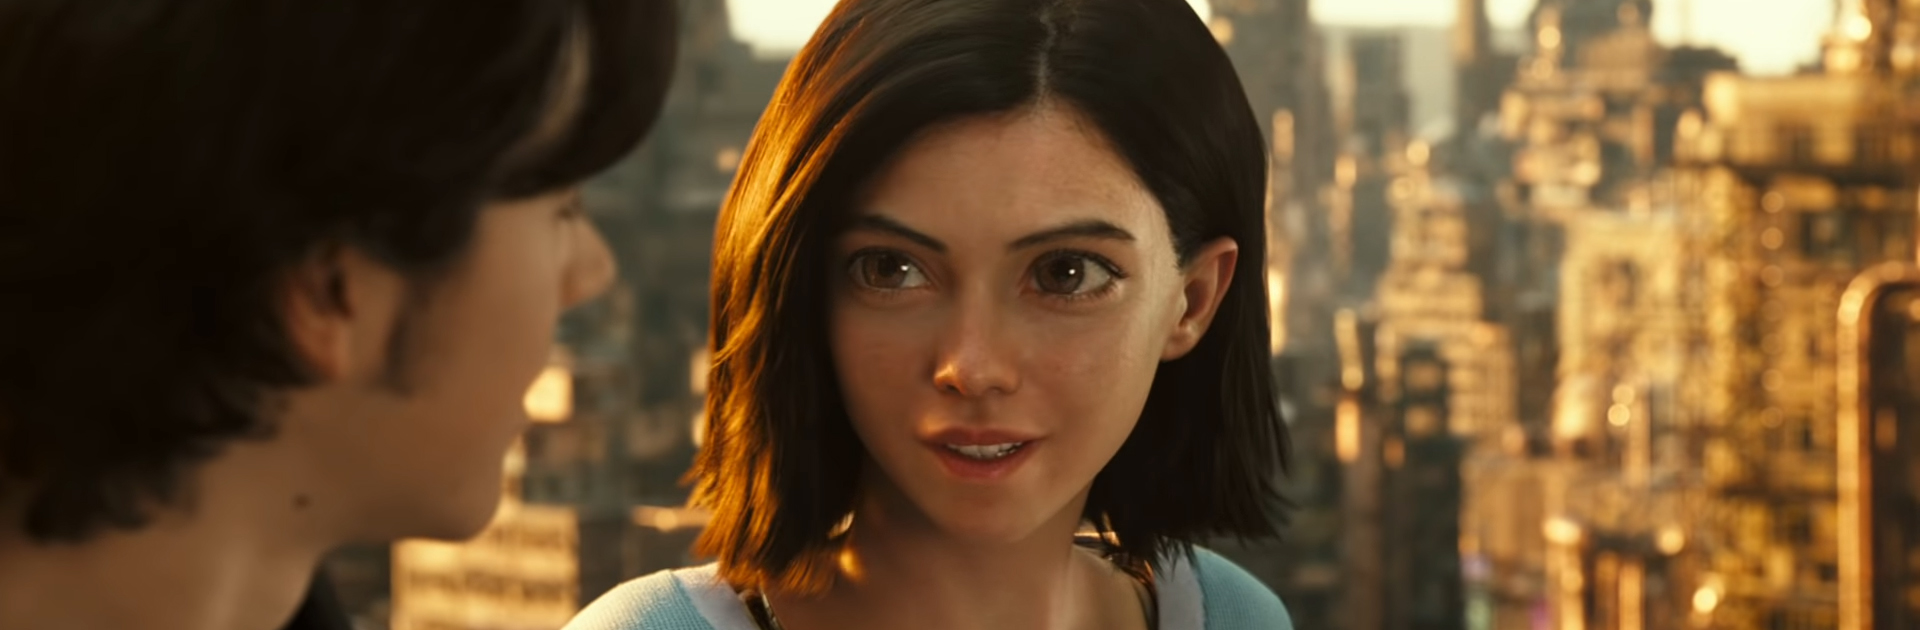 Alita: Battle Angel. Image Credit: 20th Century Fox.